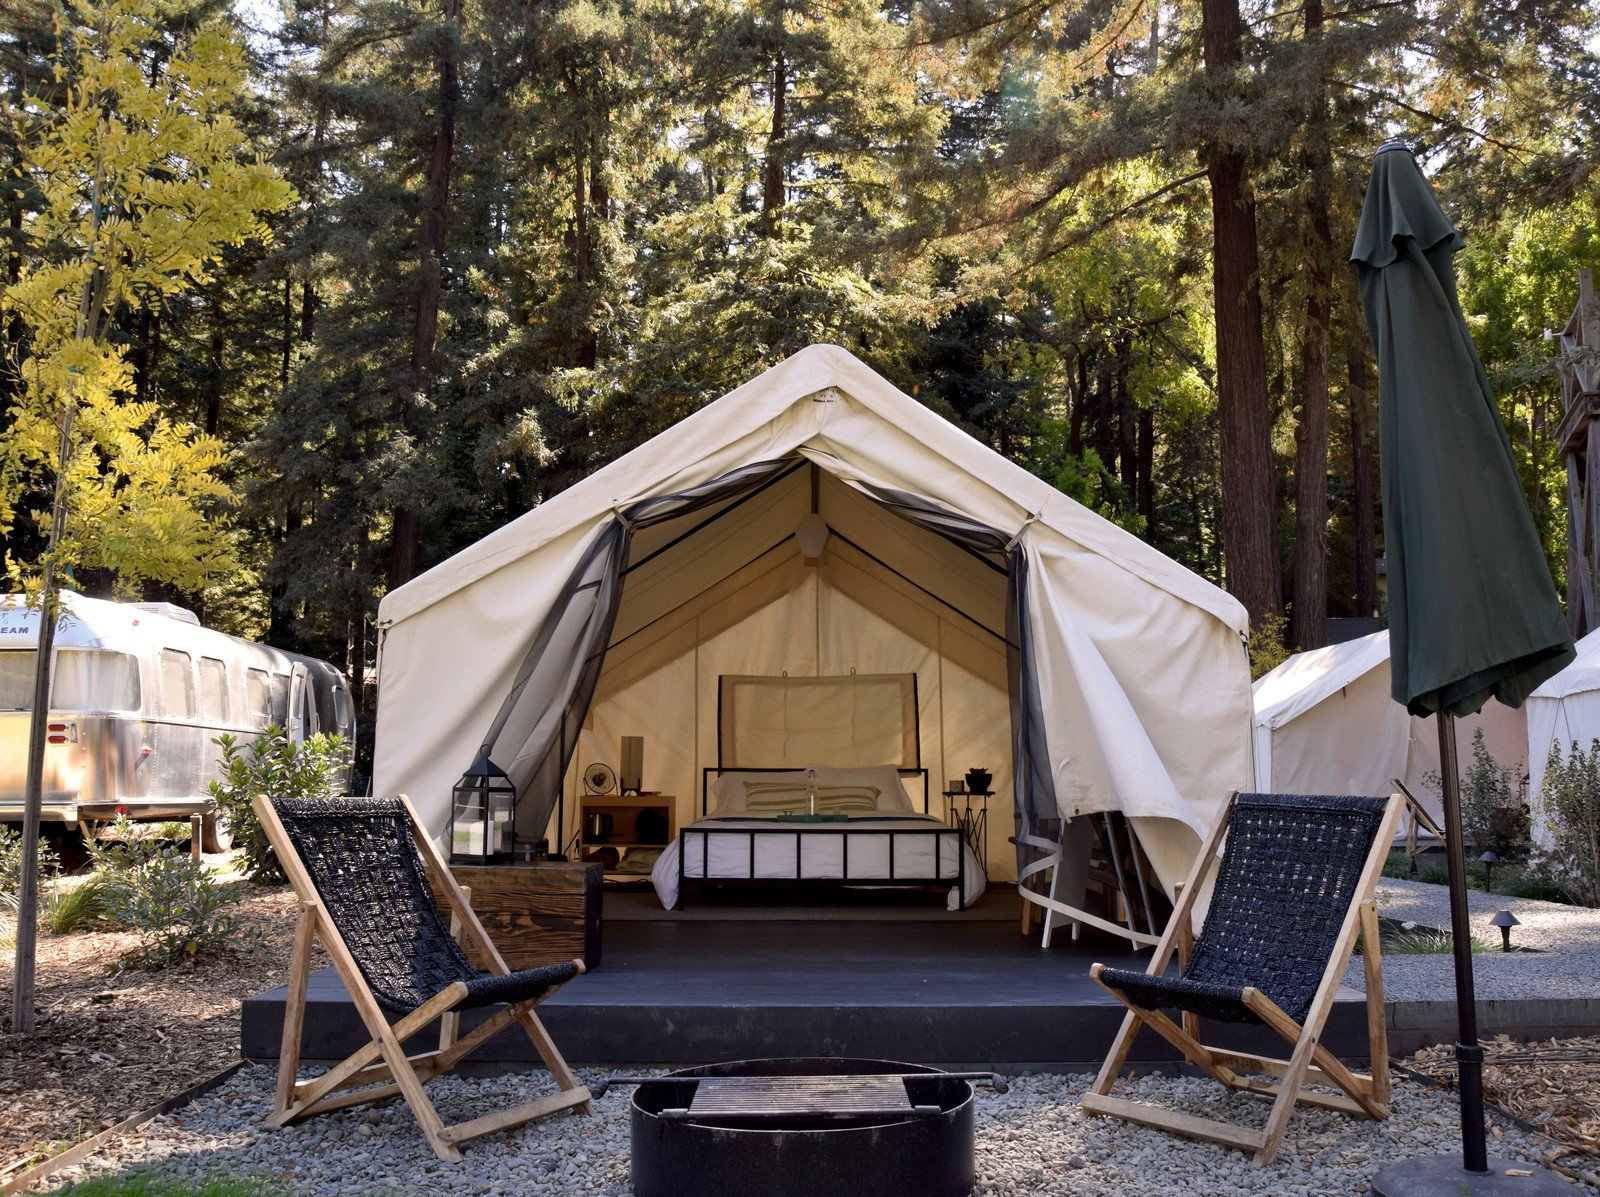 Photo 1 of 7 in The 5 Outdoorsy Gifts That Every Modern Camper Needs